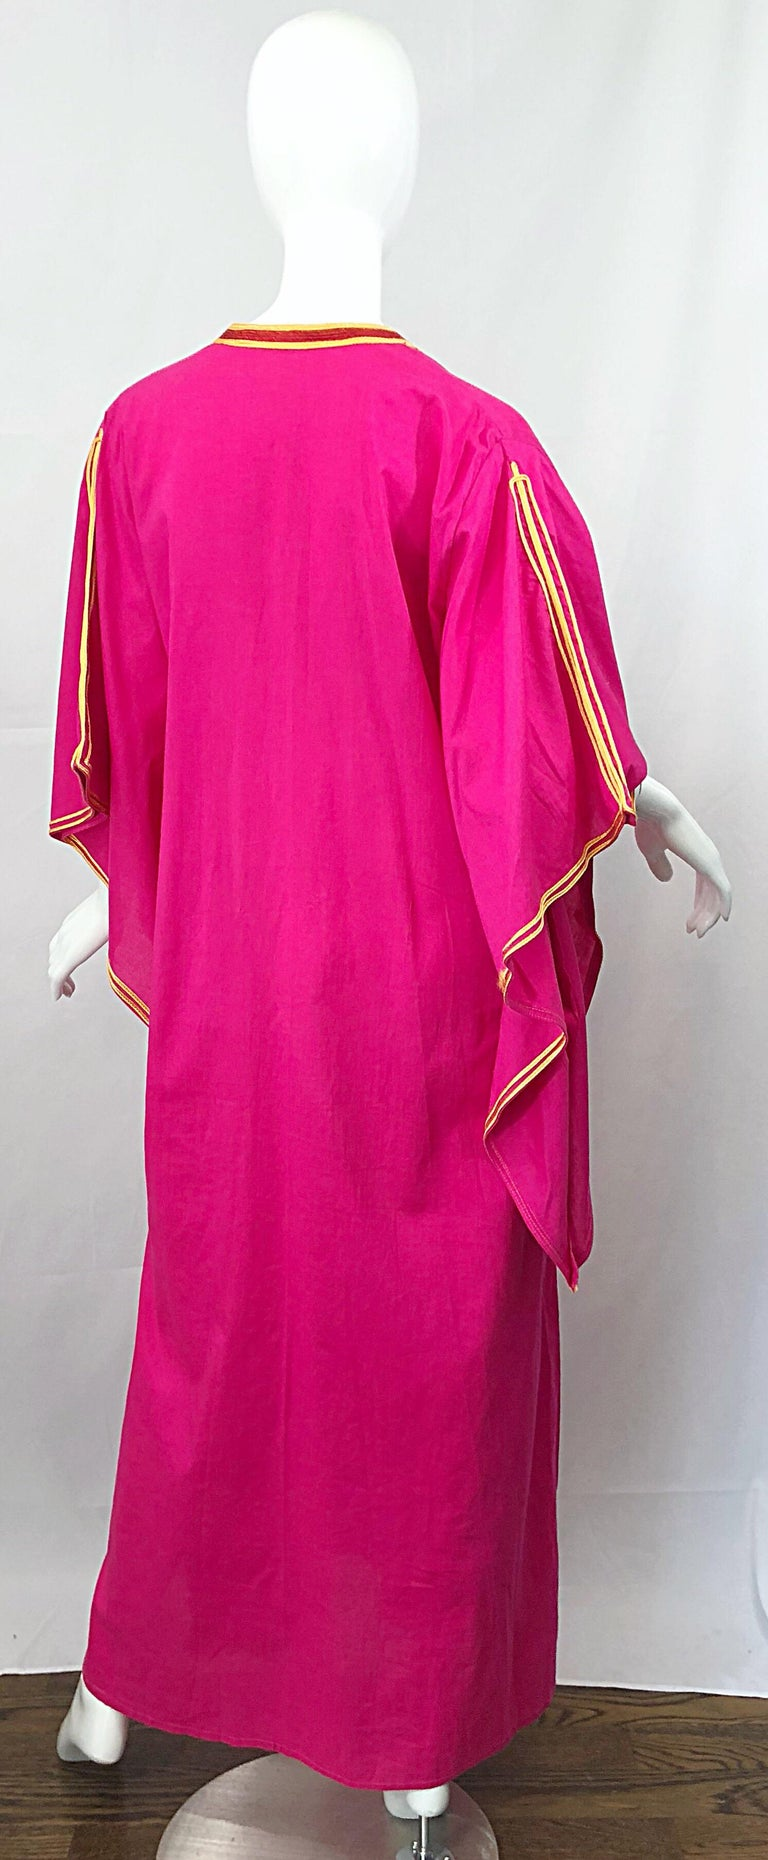 Amazing 1970s Hot Pink + Yellow Angel Sleeve Vintage 70s Kaftan Maxi Dress In Excellent Condition For Sale In Chicago, IL